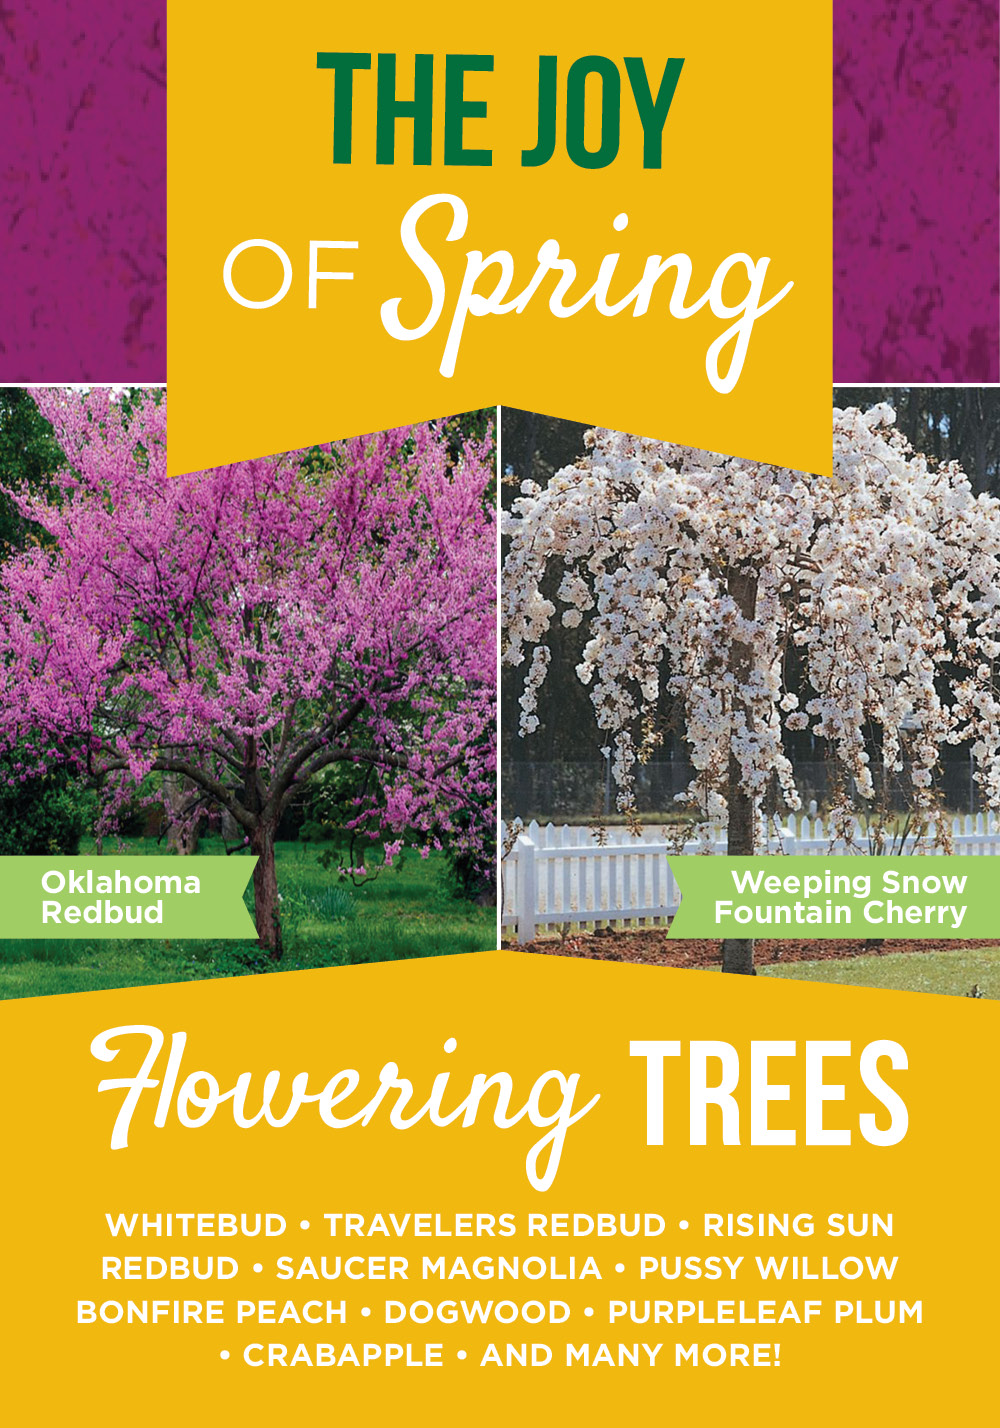 Flowering Trees | TLC Garden Centers